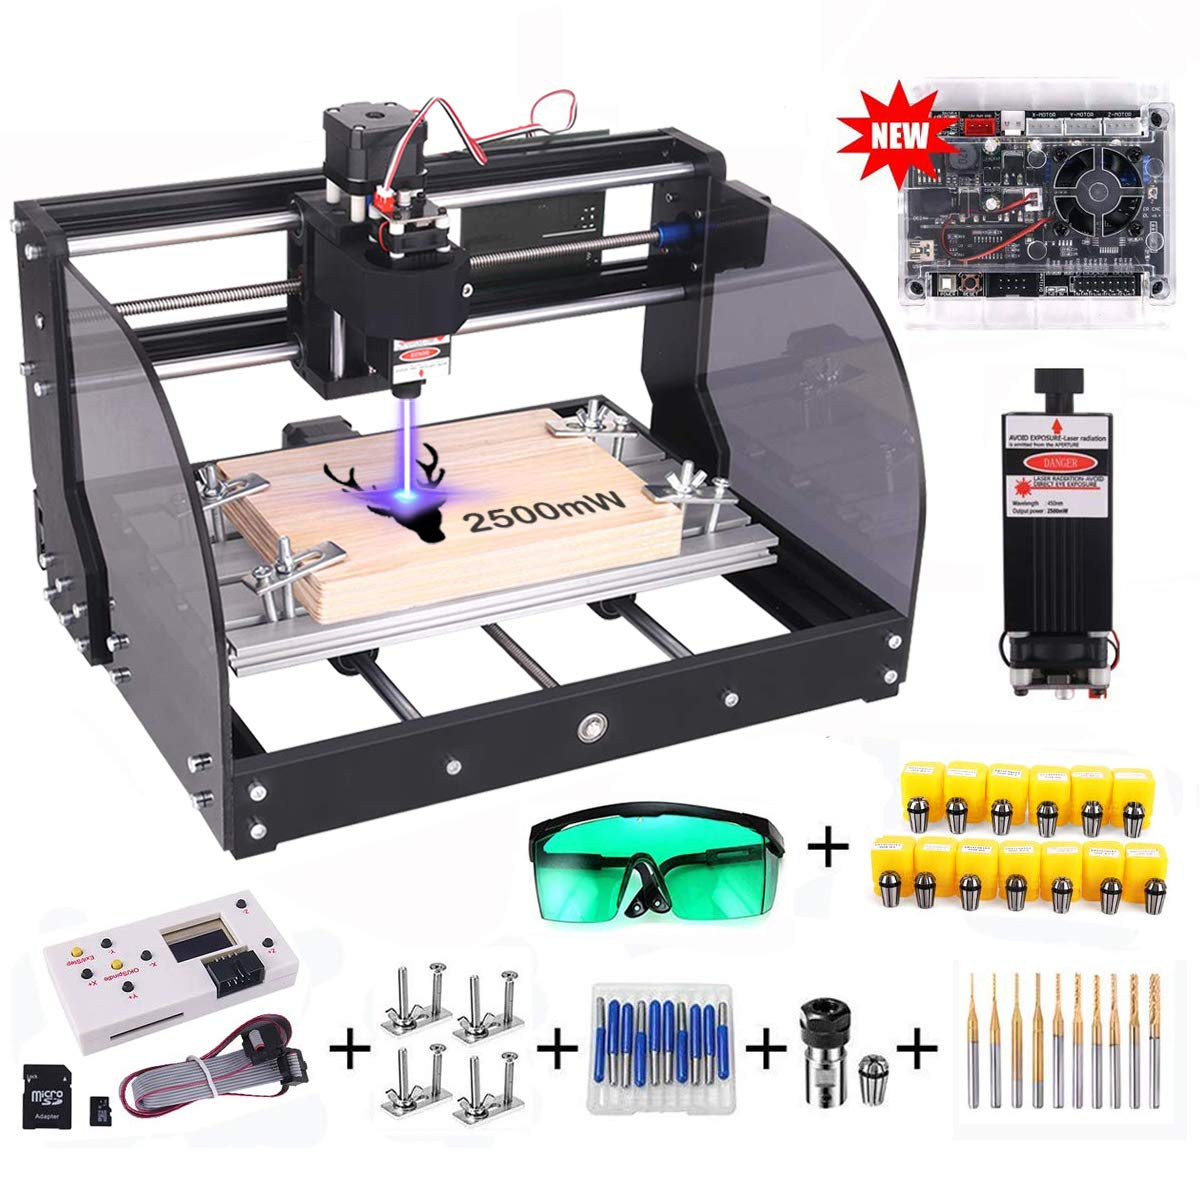 【Upgrade Version】CNC 3018 Pro-M GRBL Control DIY CNC Router Machine, Yofuly 2500mW Laser Engraver 3 Axis PCB PVC Milling Engraving Machine, with Extension Rod | Offline Controller Board (2500mW) 71tQv5wcbDL